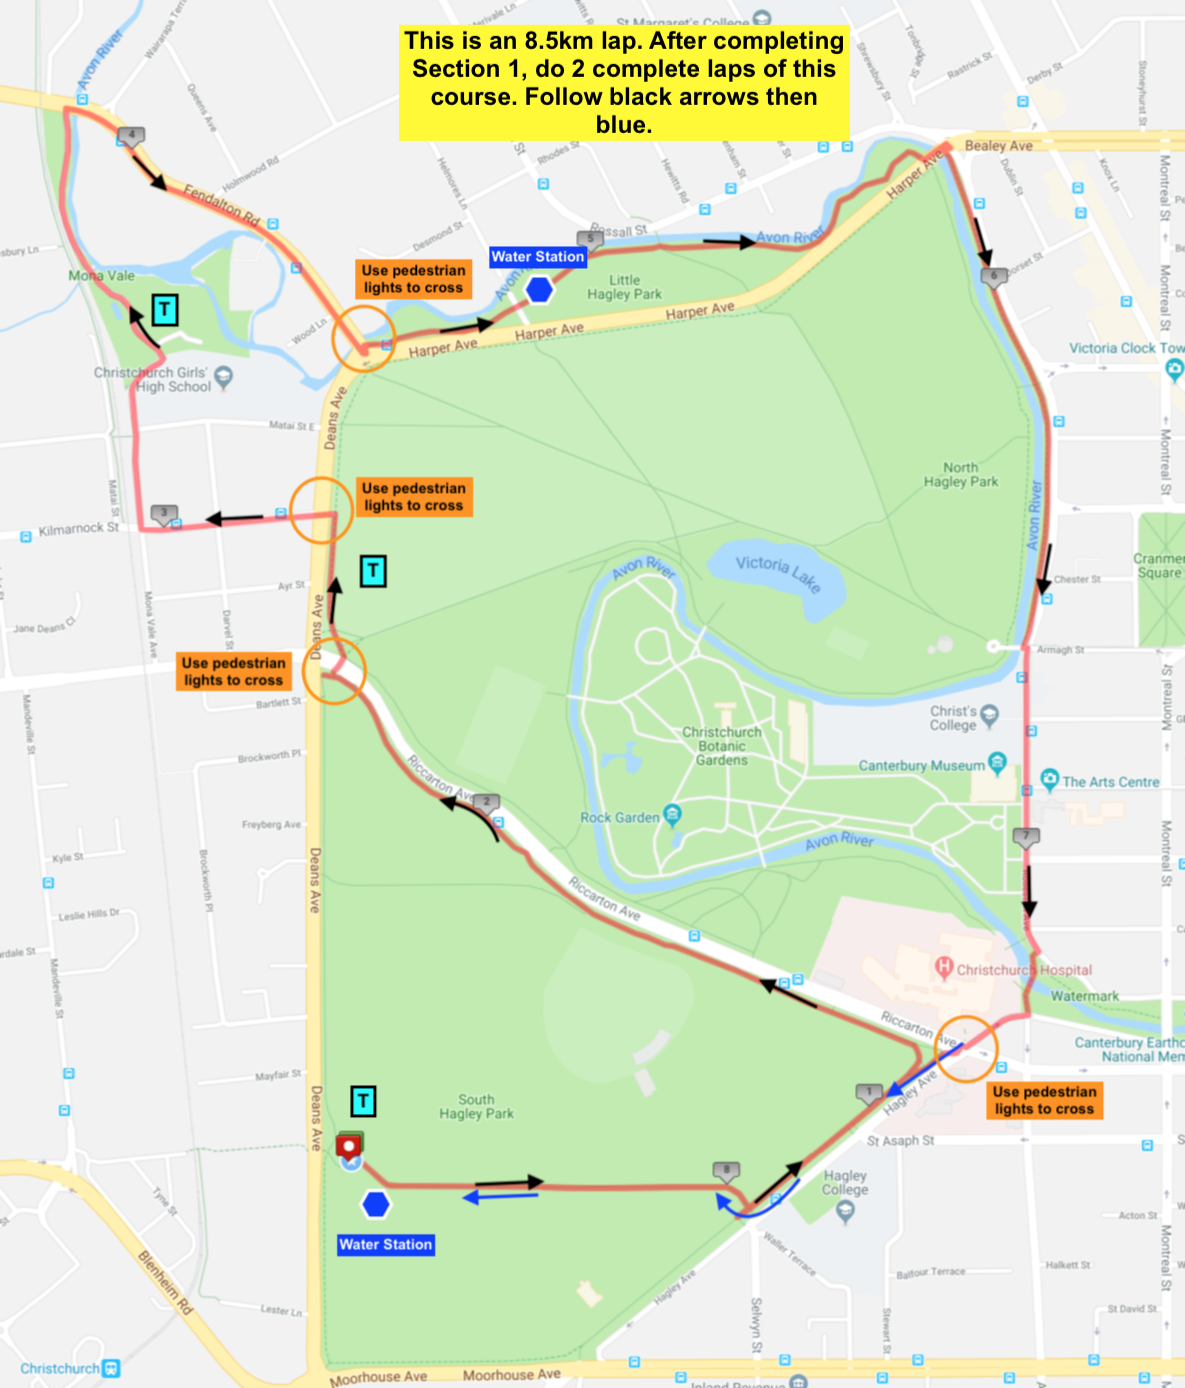 Section 2 Course Map